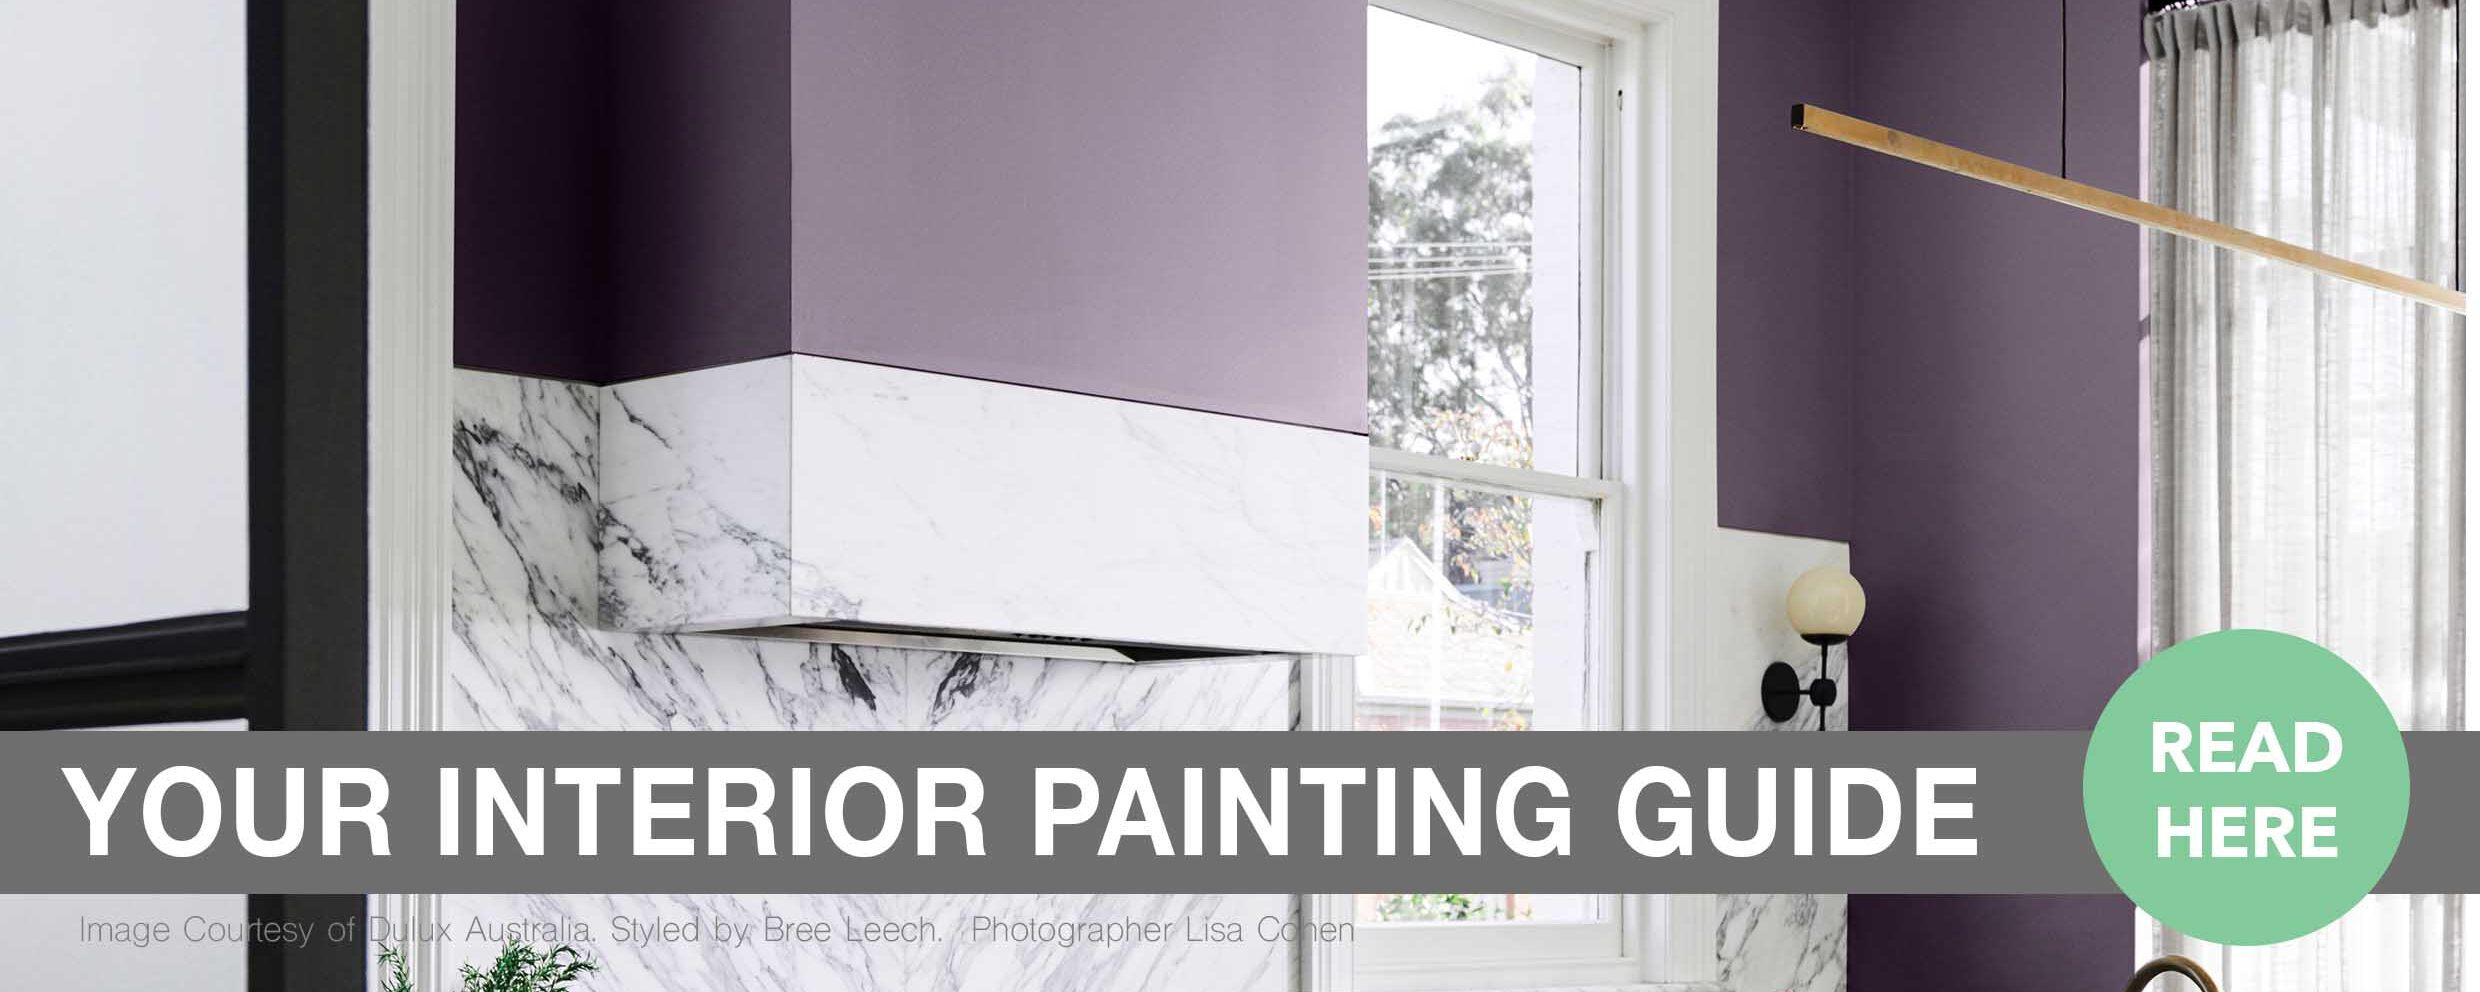 INTERIOR PAINTING GUIDE